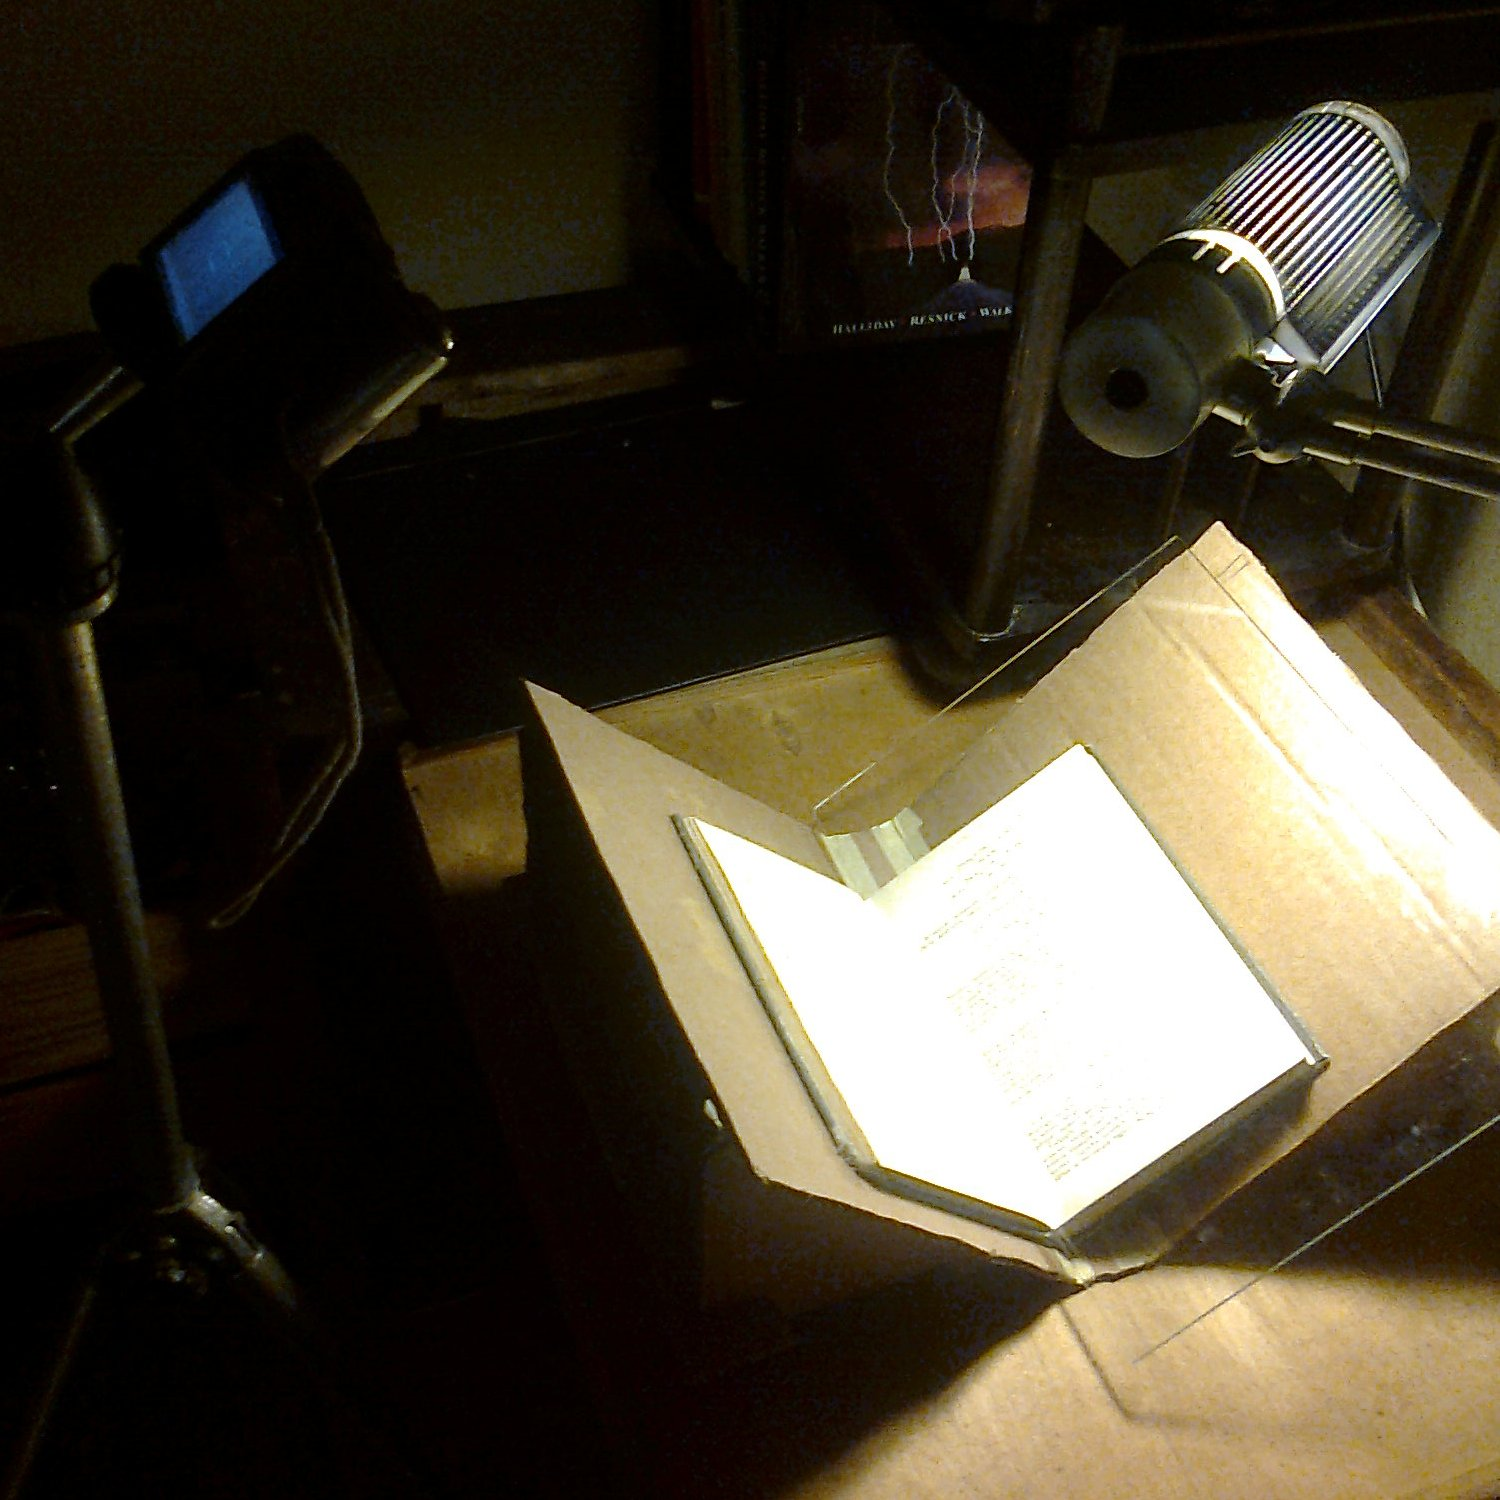 Foldable book stand for camera scanning